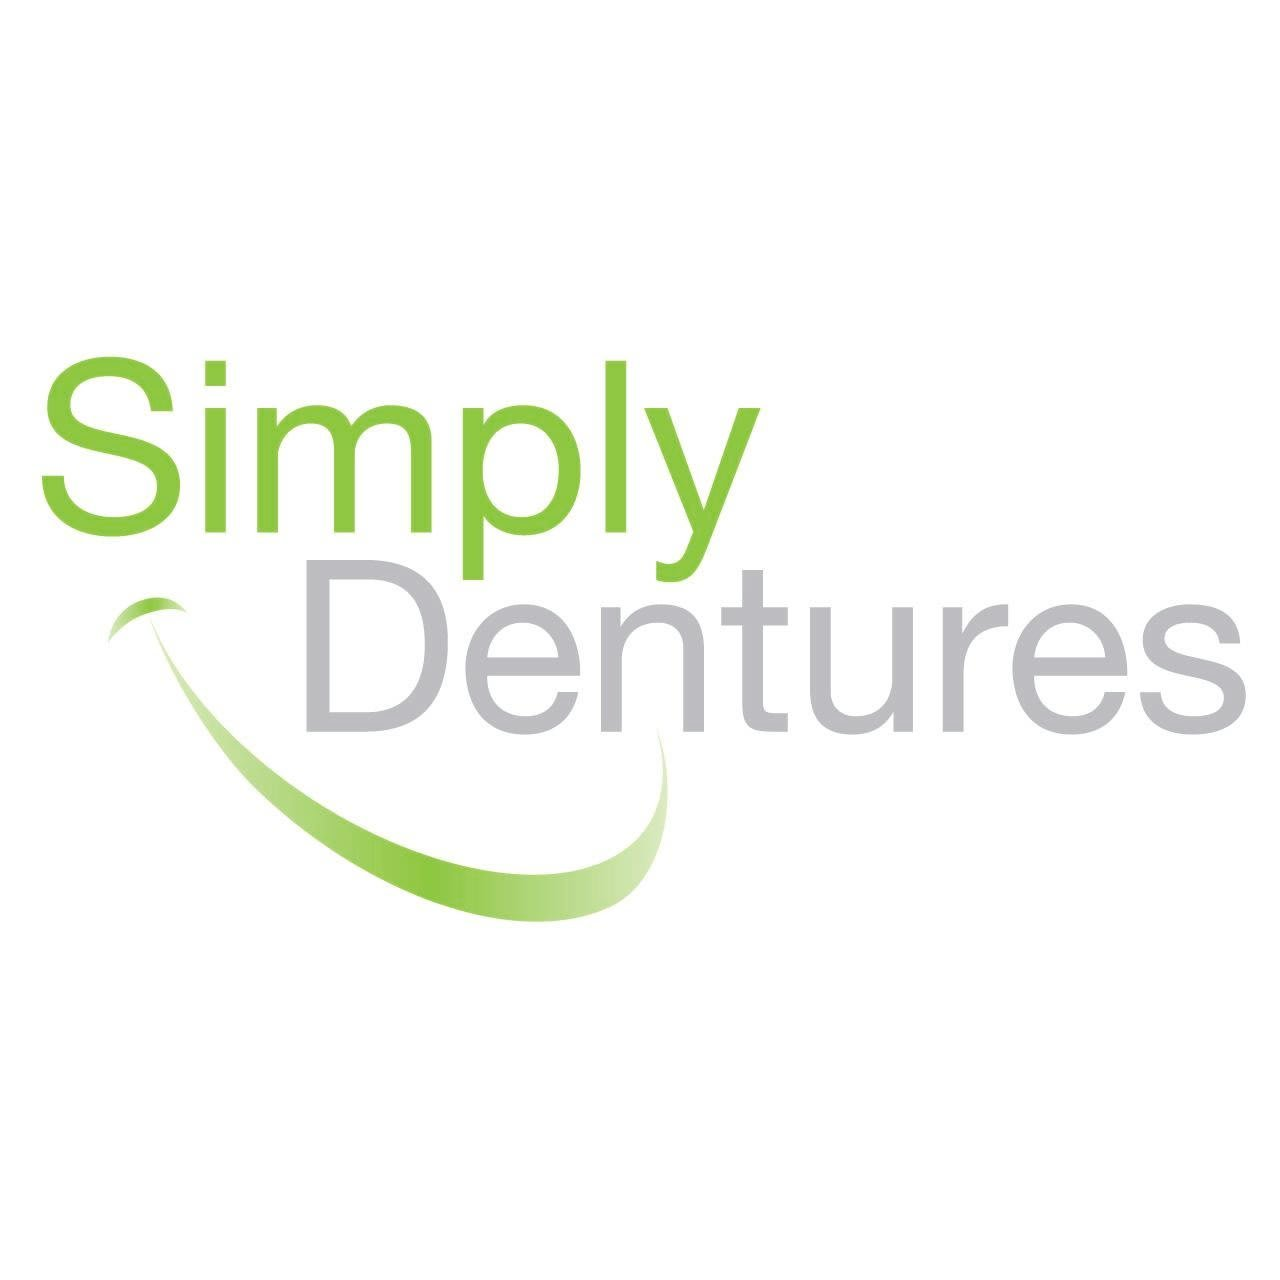 Simply Dentures (West Midlands) - Bilston, West Midlands WV14 9EP - 01902 664634 | ShowMeLocal.com